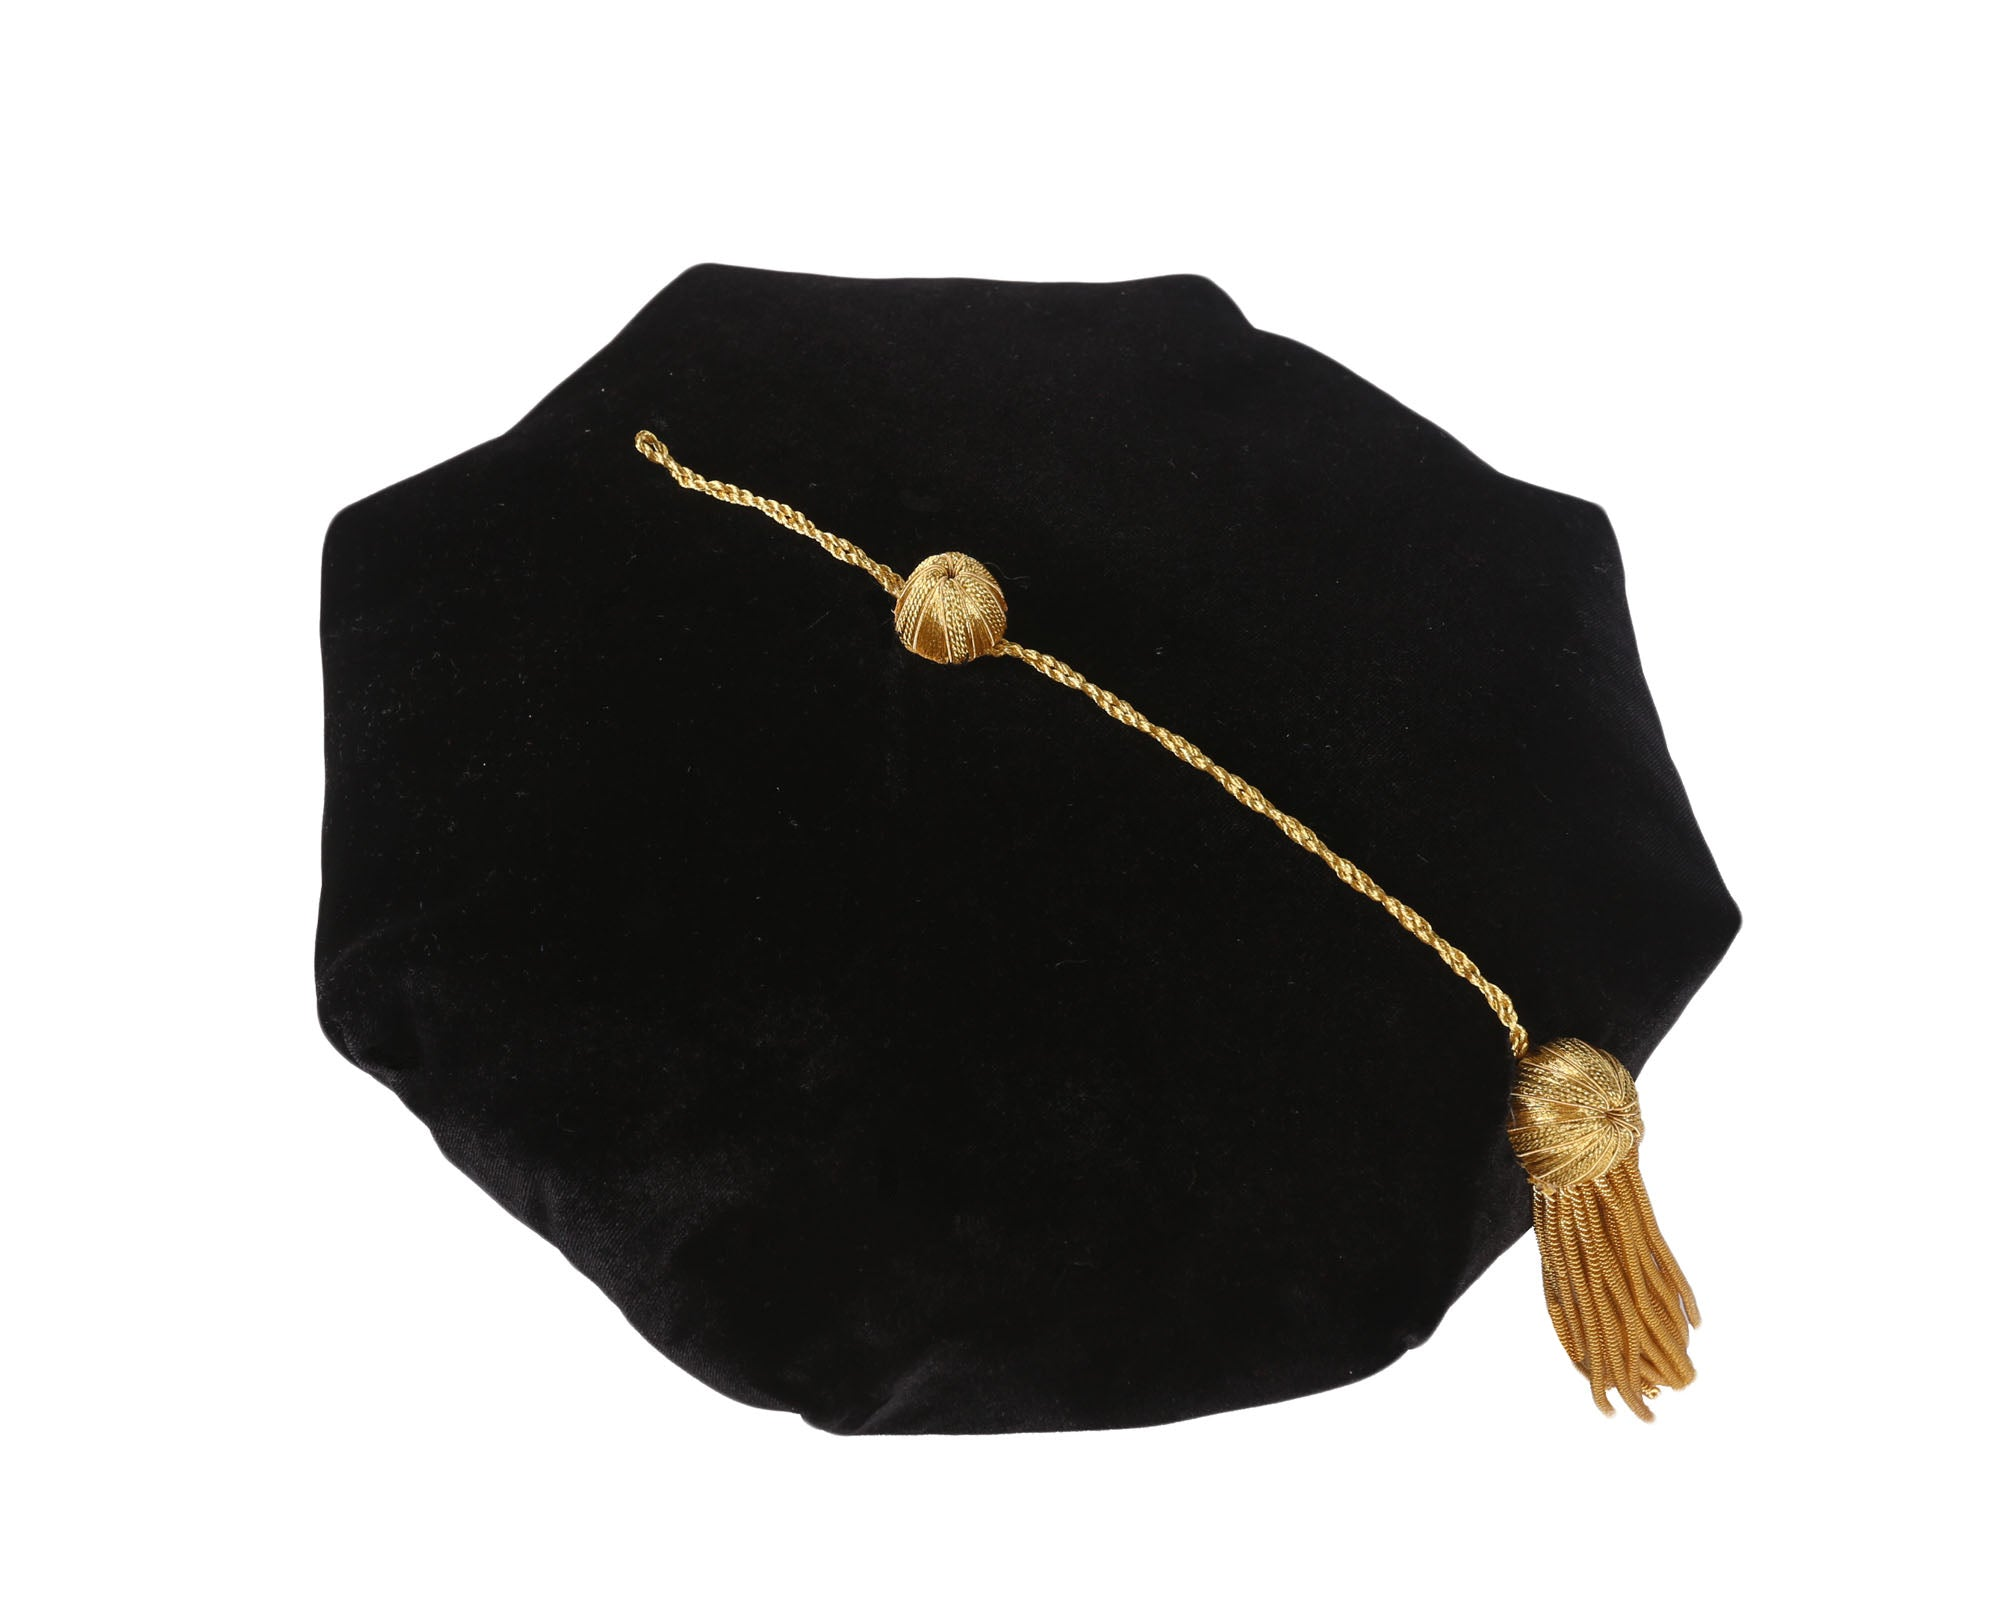 Graduation Doctoral 8-side Tam without Gold Tassel Customization